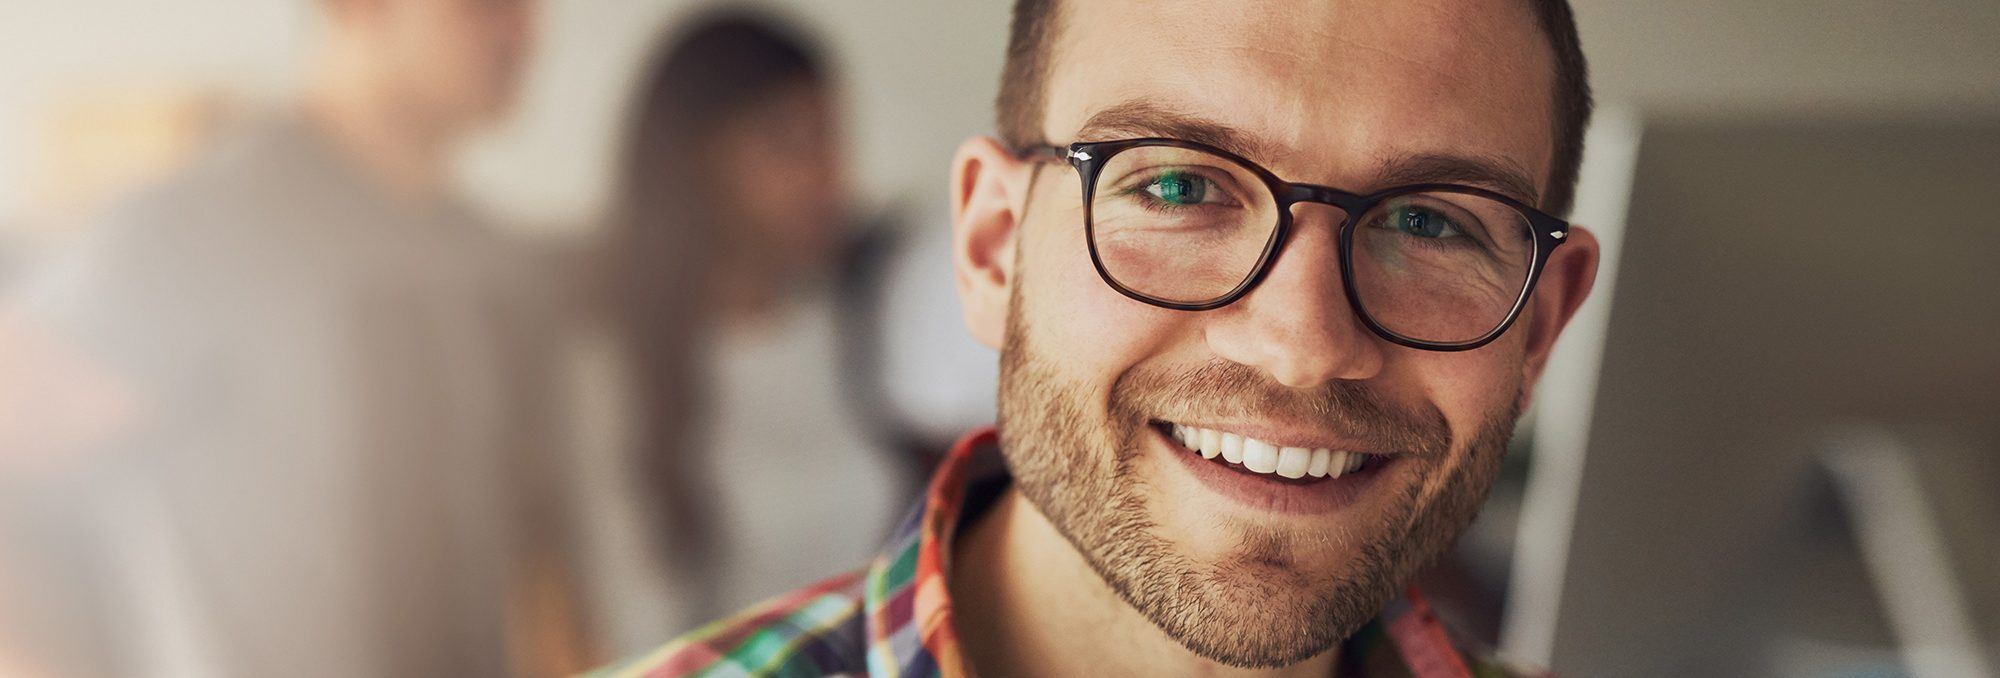 A young man with nice glasses and stubble